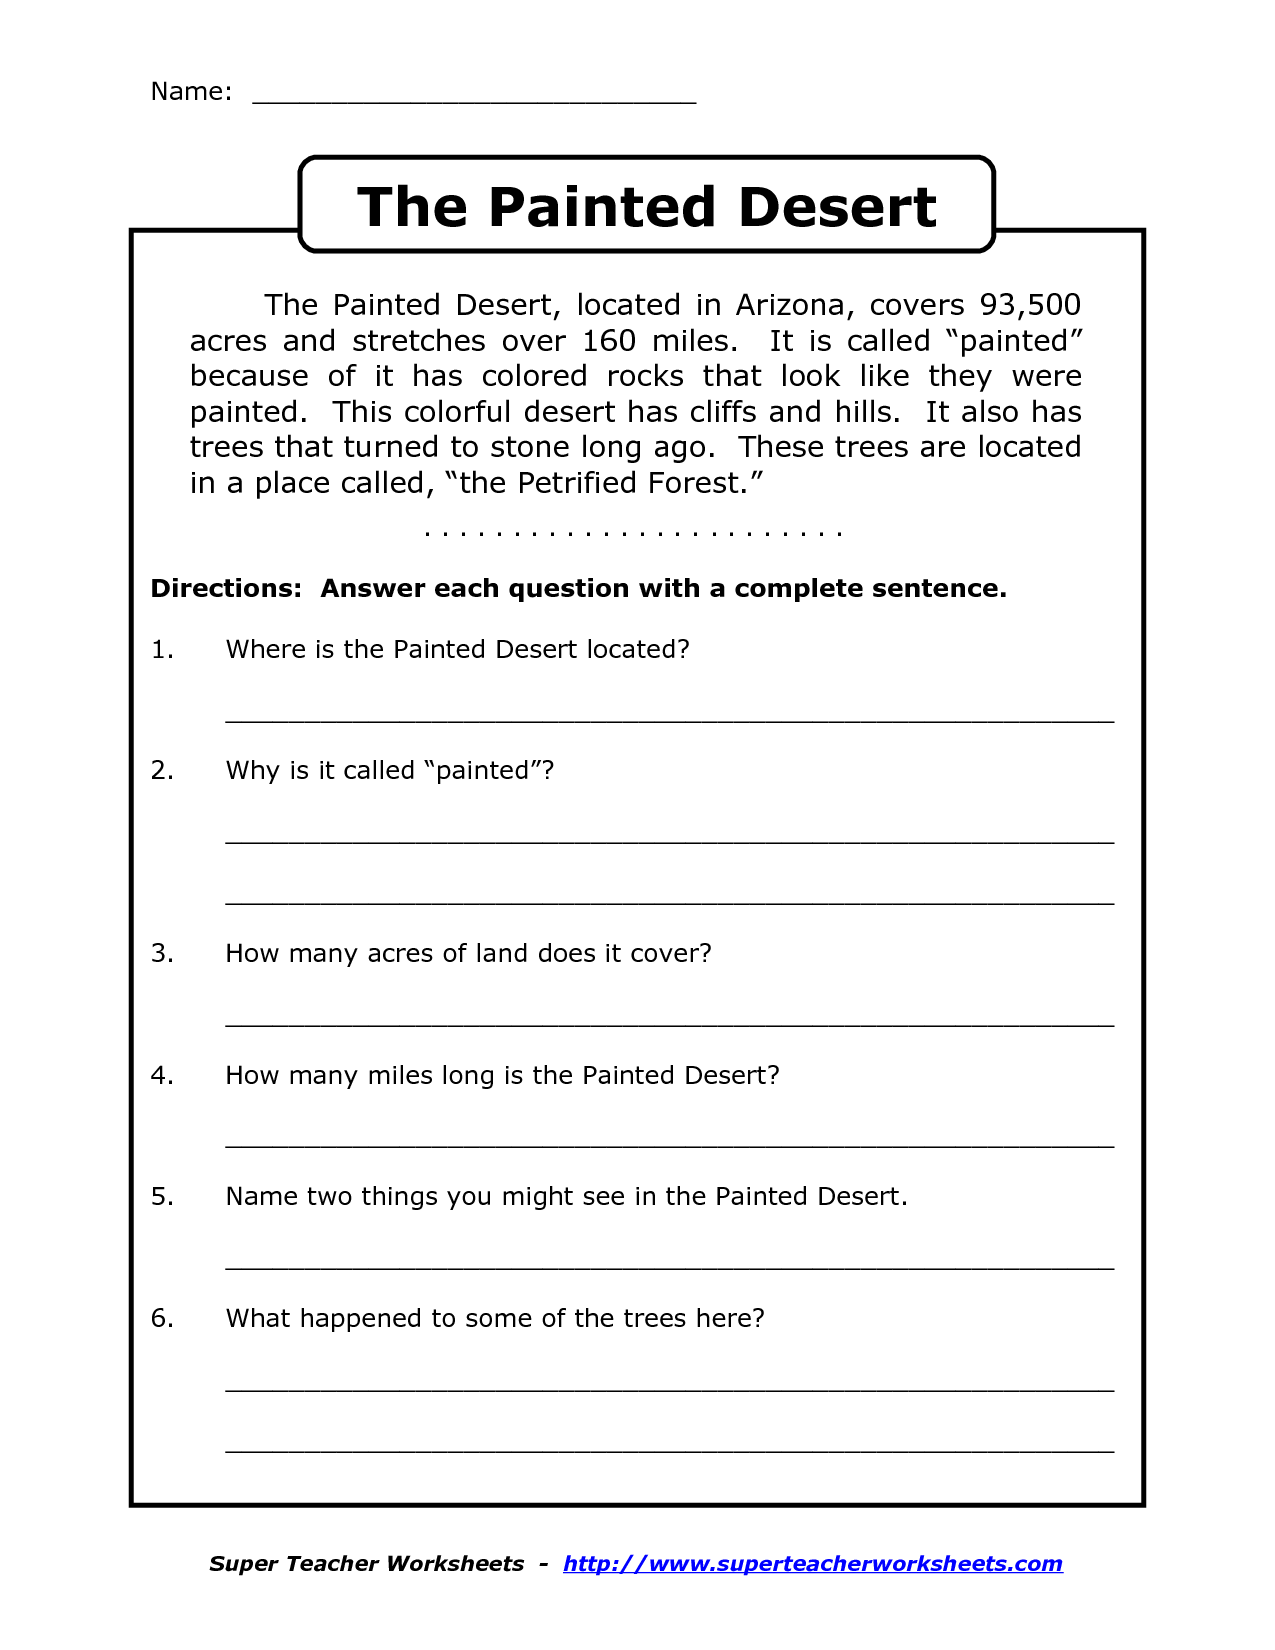 worksheet Free Printable Reading Worksheets printables free printable reading comprehension worksheets for 3rd grade www laurenpsyk grade